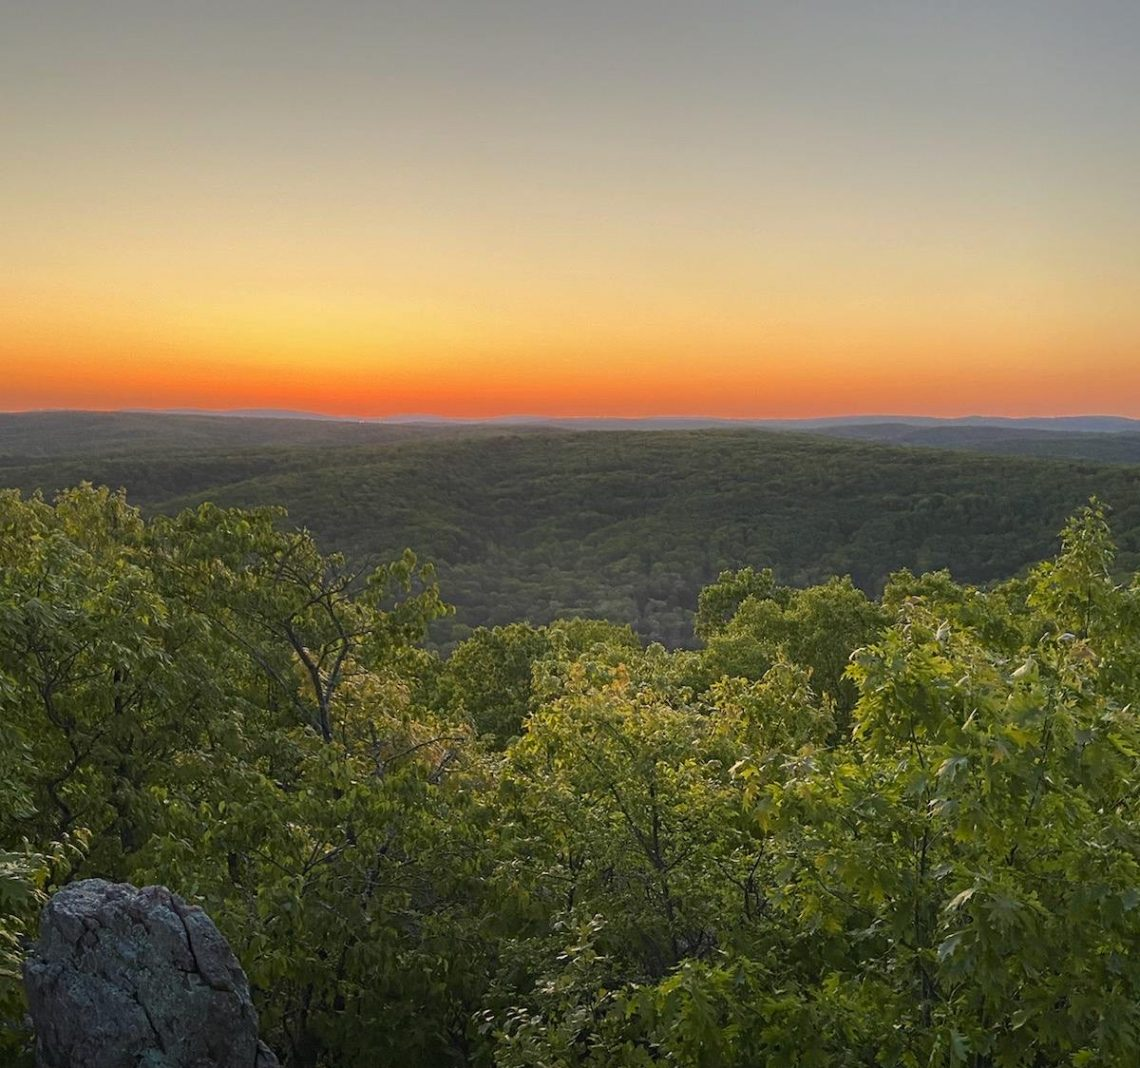 view of the sunset from the top of Bell Mountain